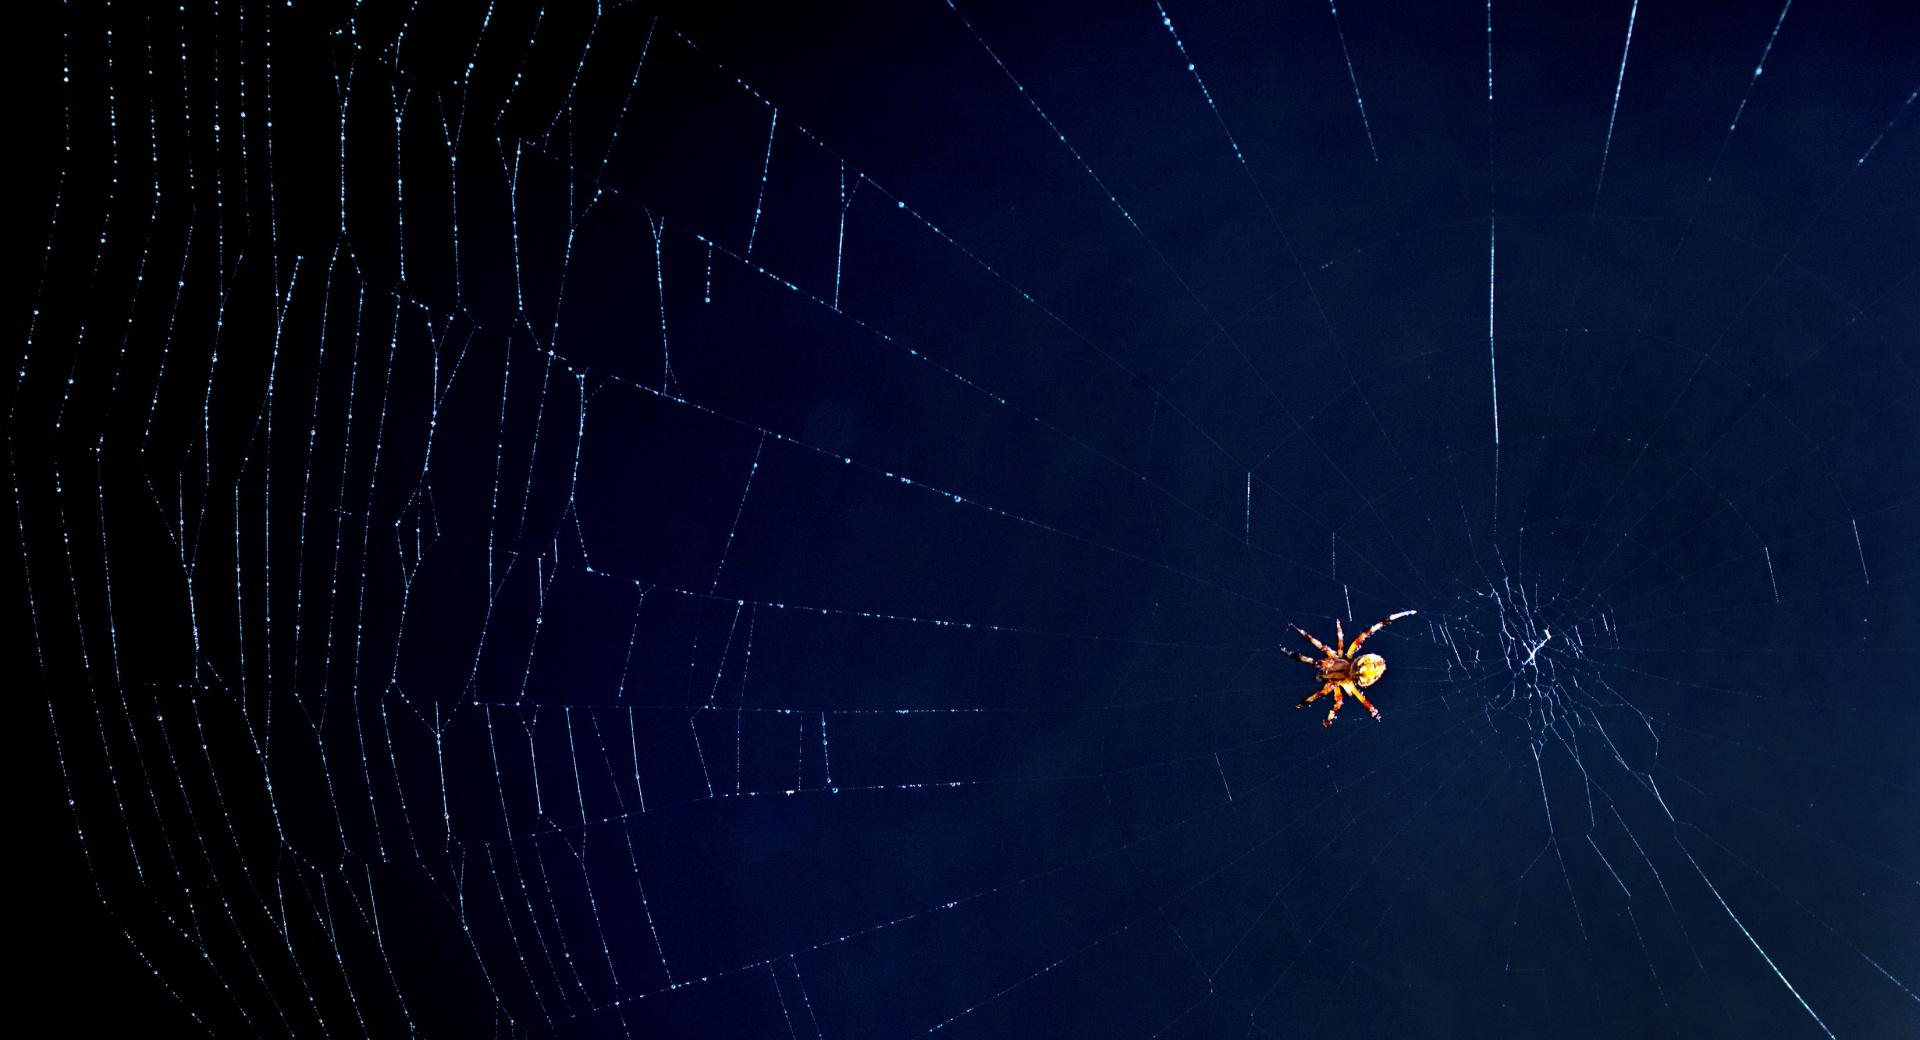 Oh What A Tangled Web We Weave wallpapers HD quality